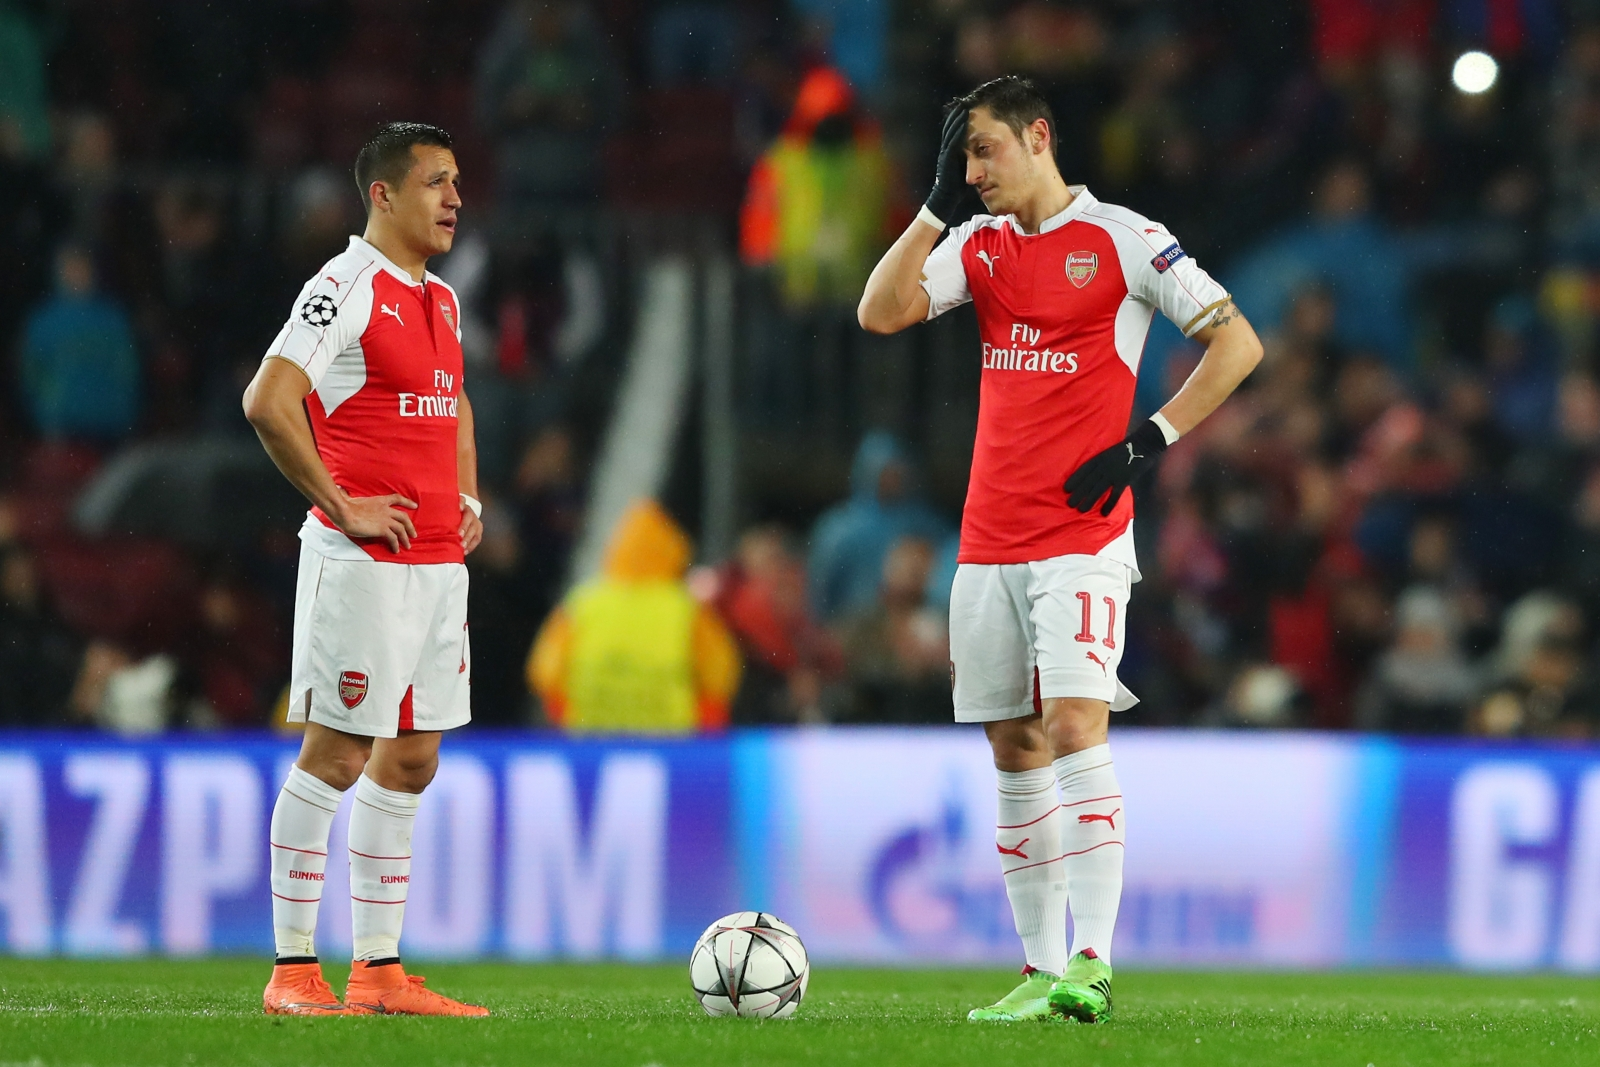 arsene-wenger-says-ozil-and-sanchez-will-stay-until-the-end-of-the-season